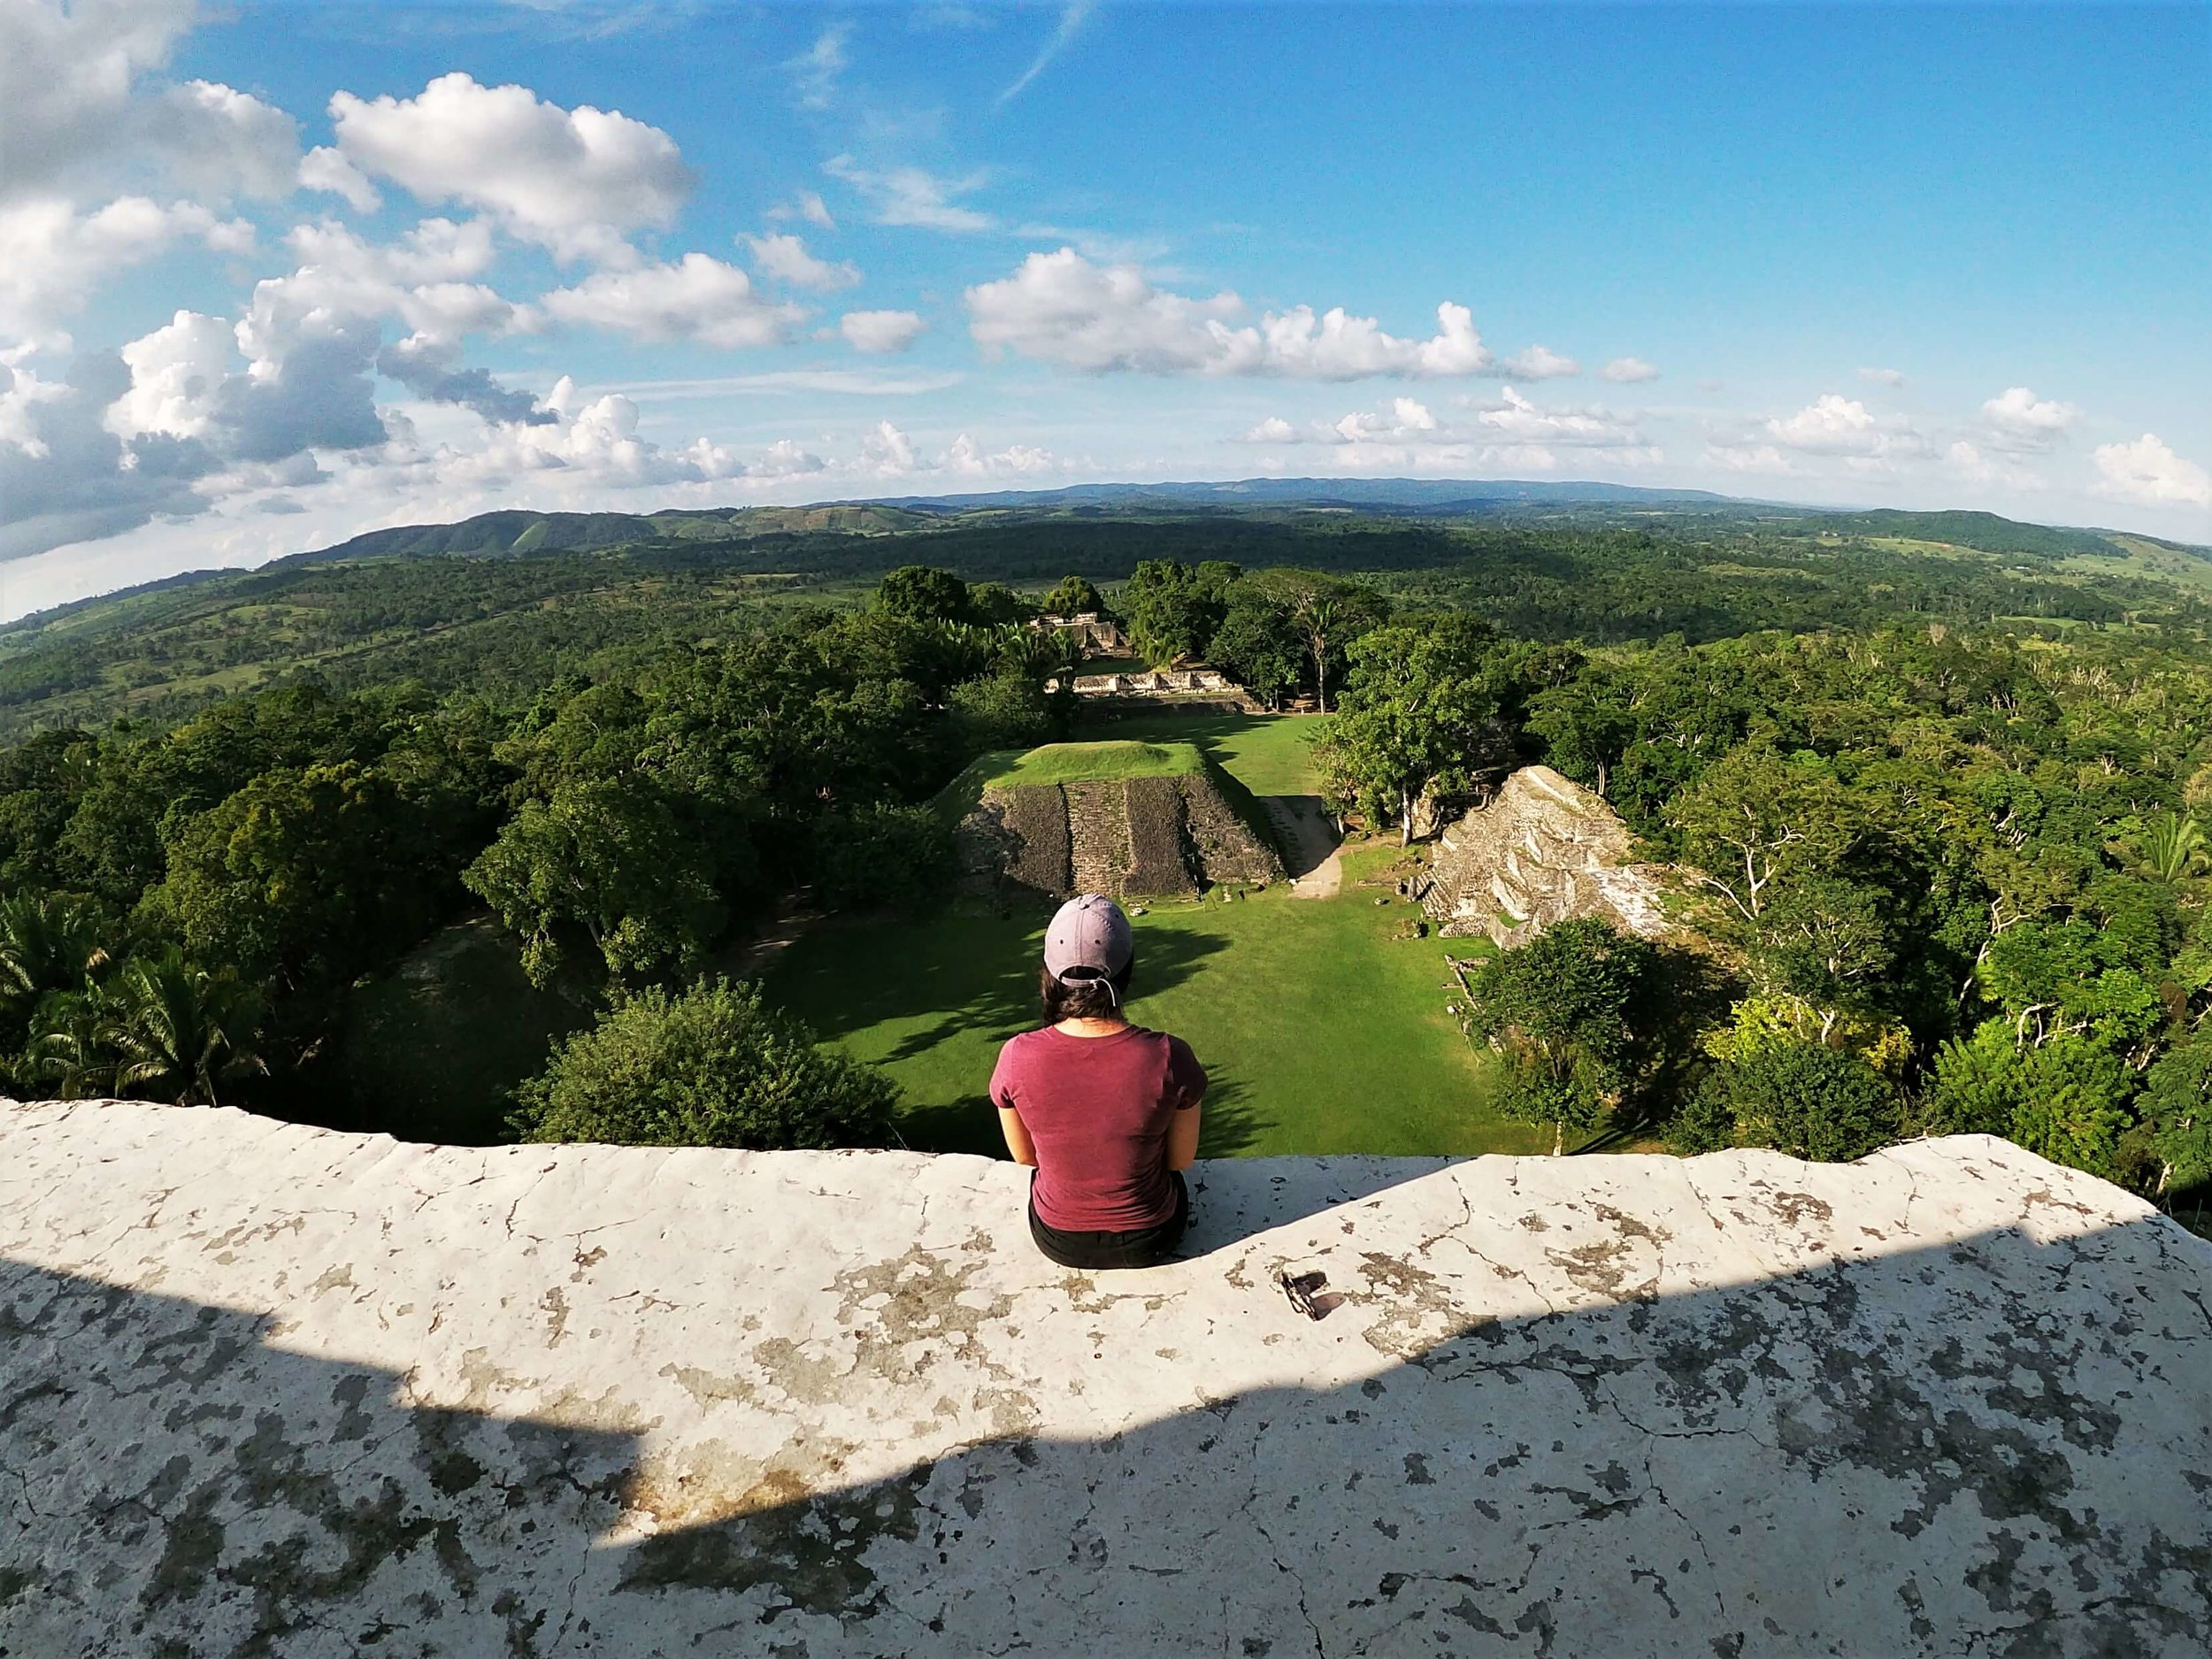 The spectacular view of Belize from the top of the tallest feature at Xunantunich Mayan Ruin.